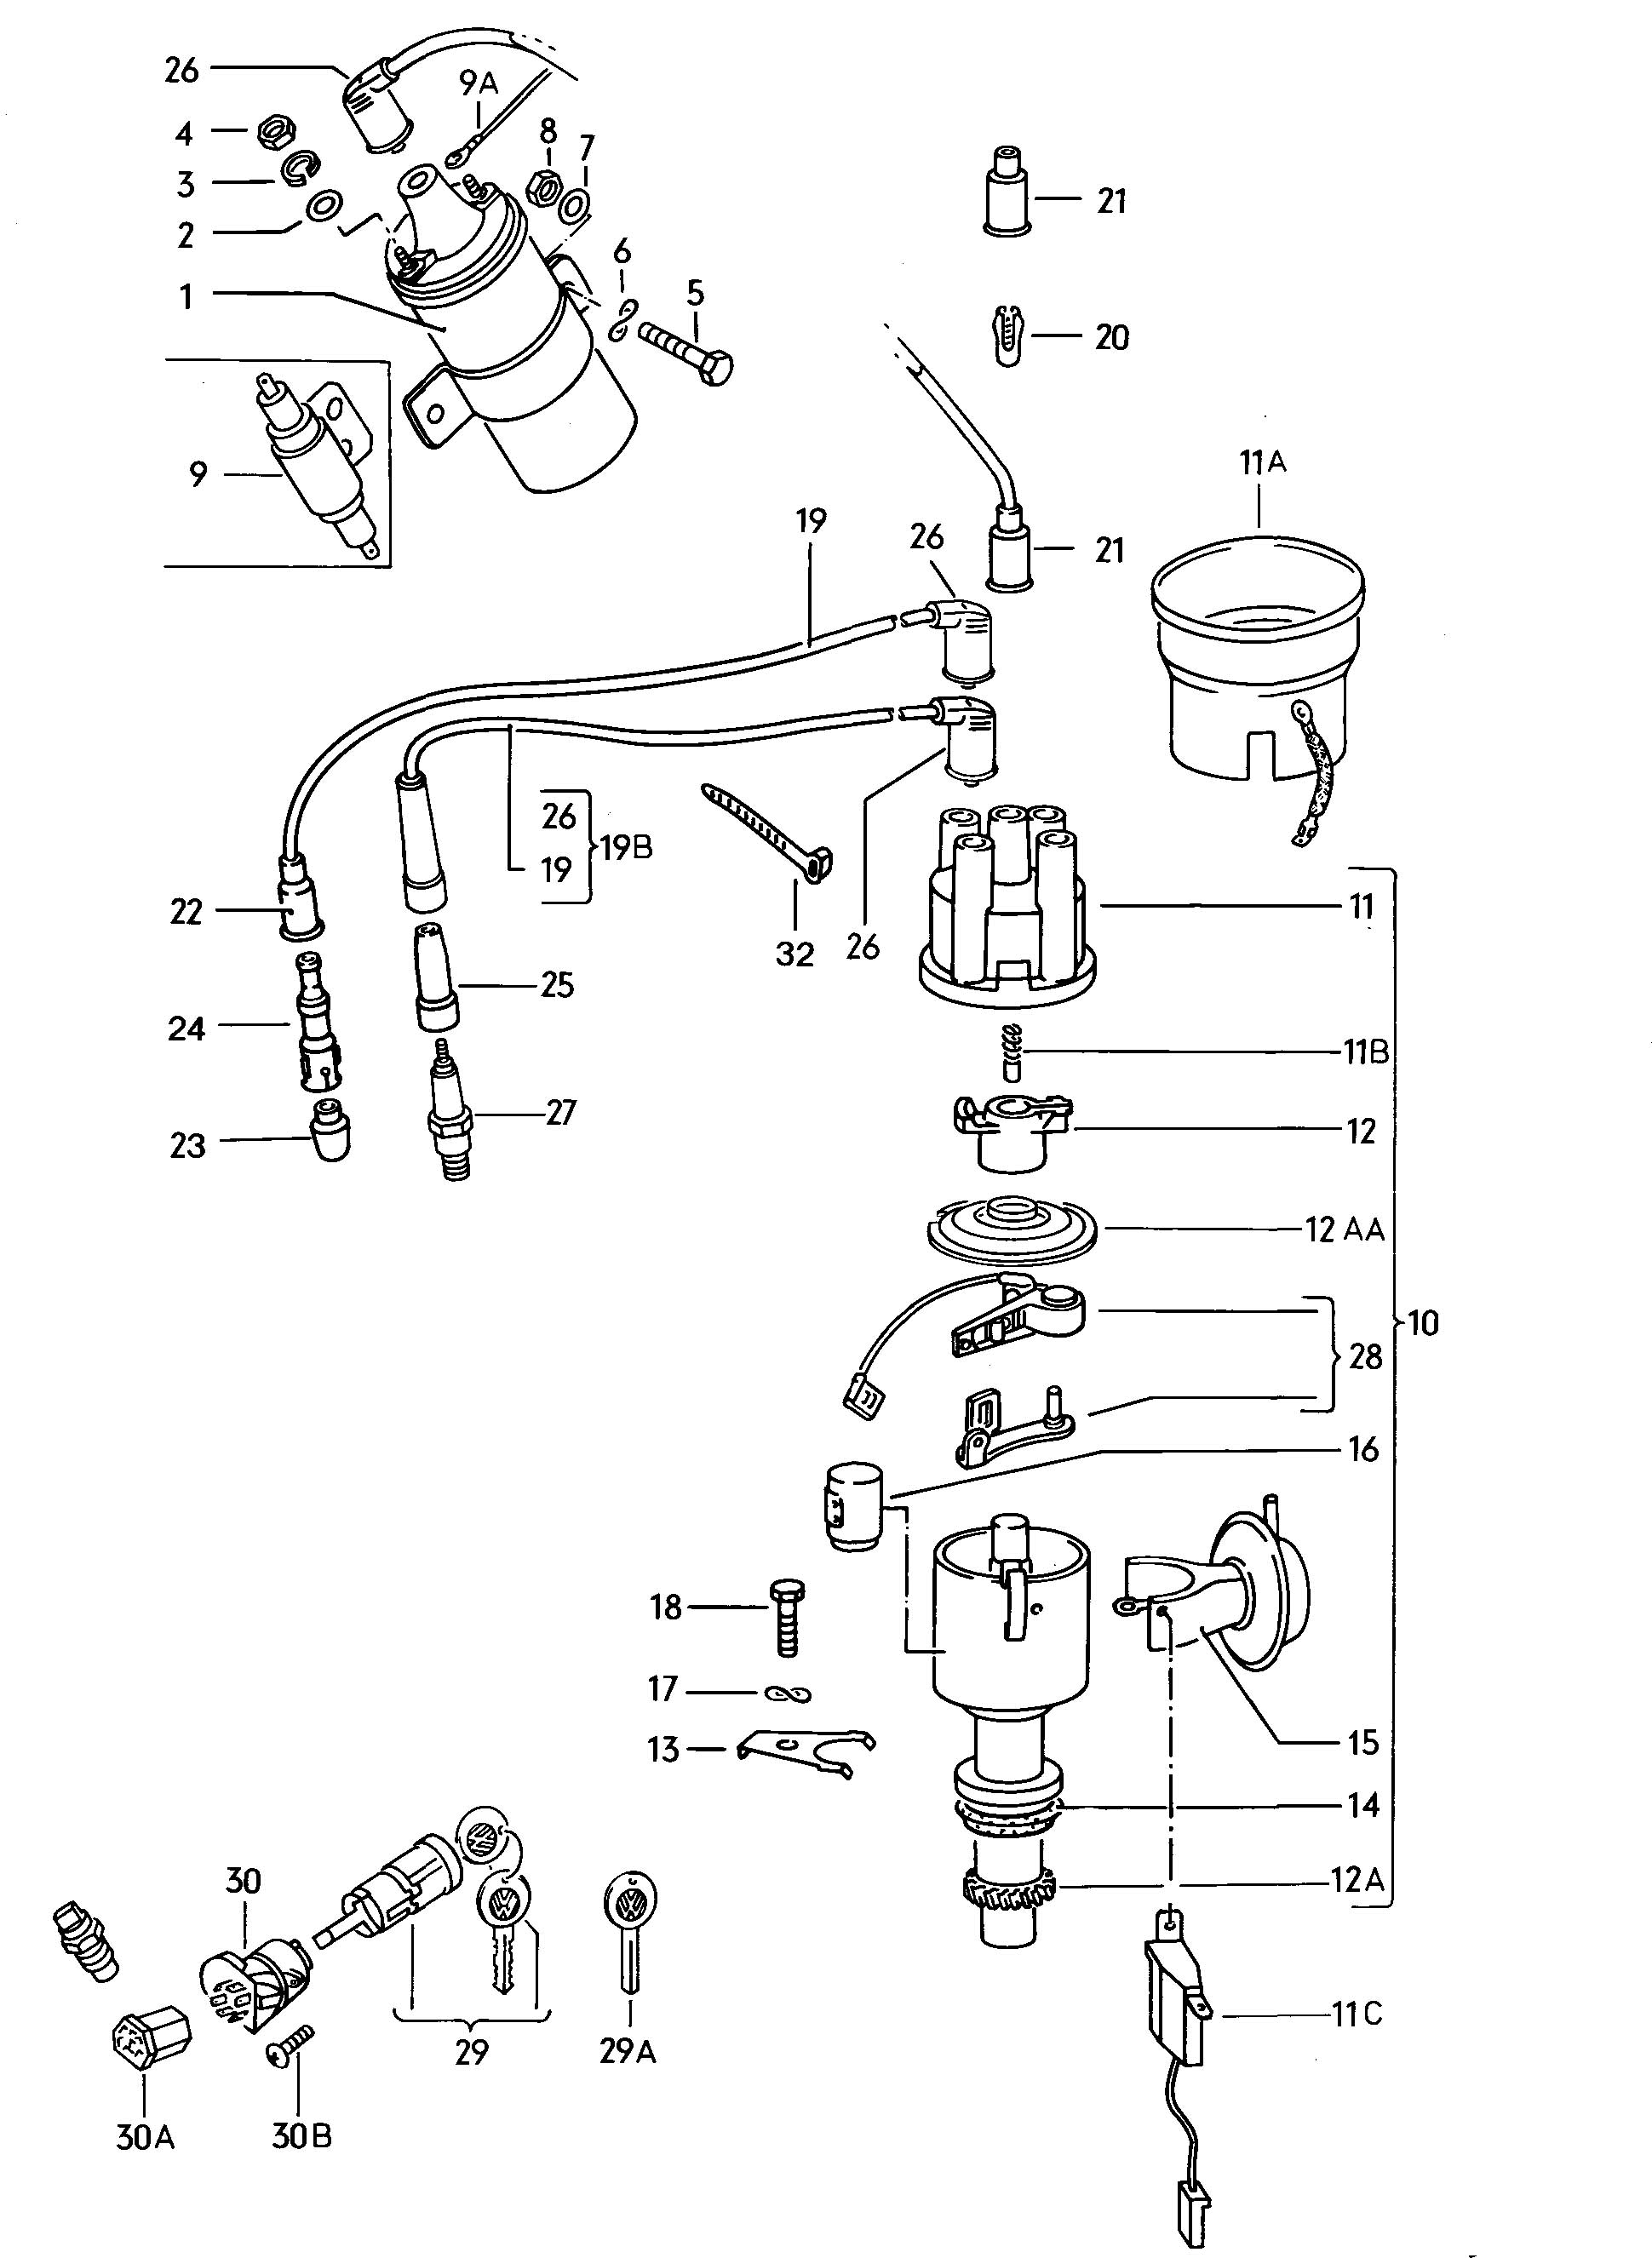 Vw Eos Fuel Pump, Vw, Free Engine Image For User Manual